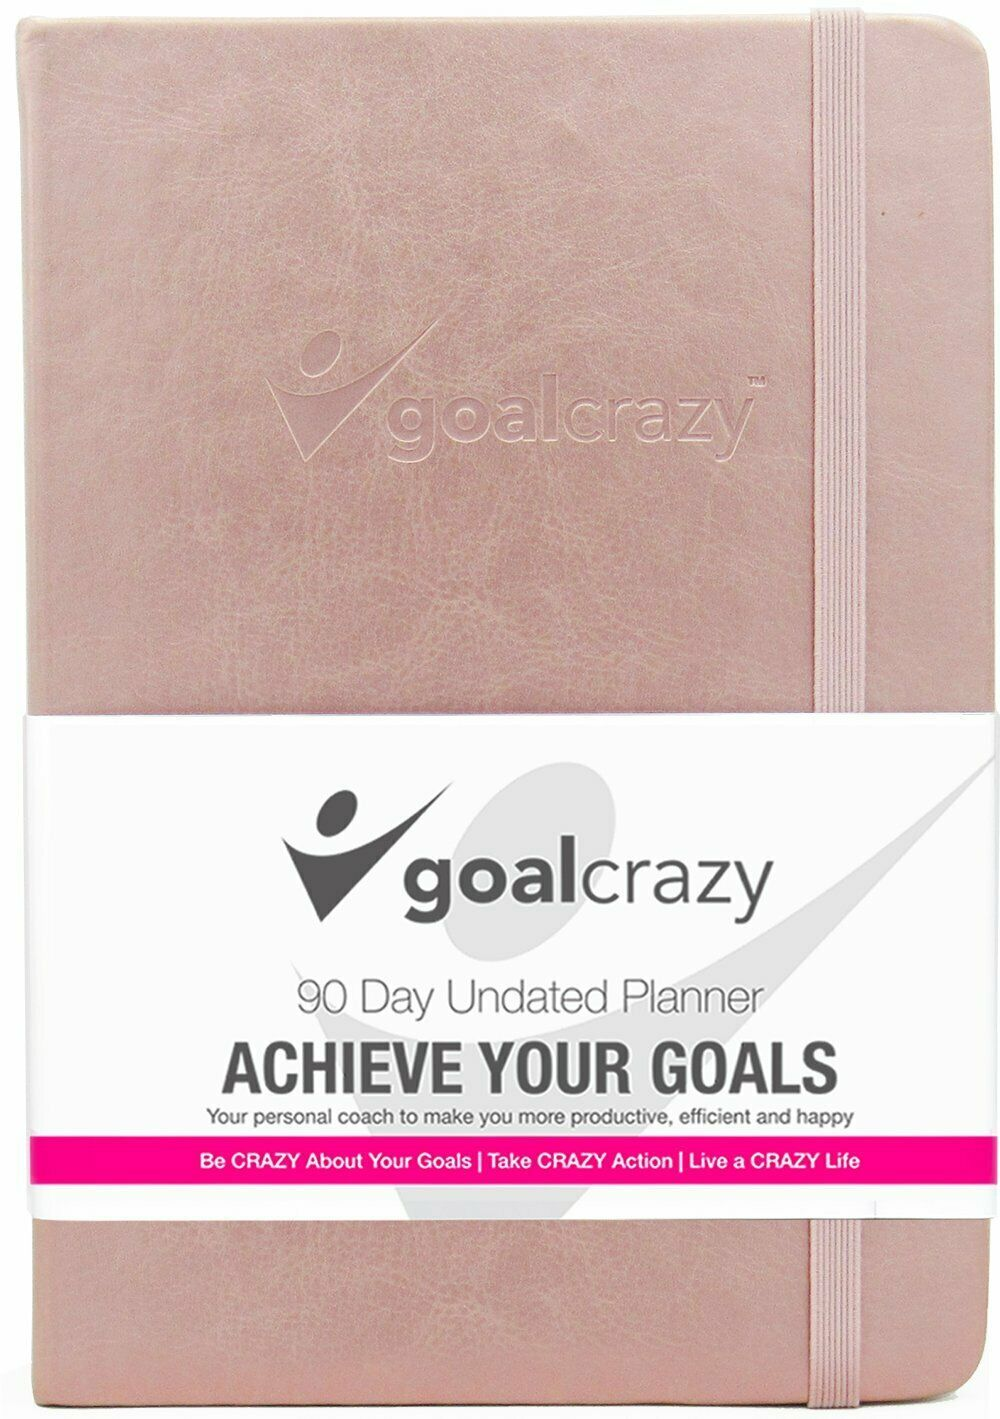 Goal Crazy 2019 Planner - 90 Day Productivity Journal, Black Leather, Undated image 12